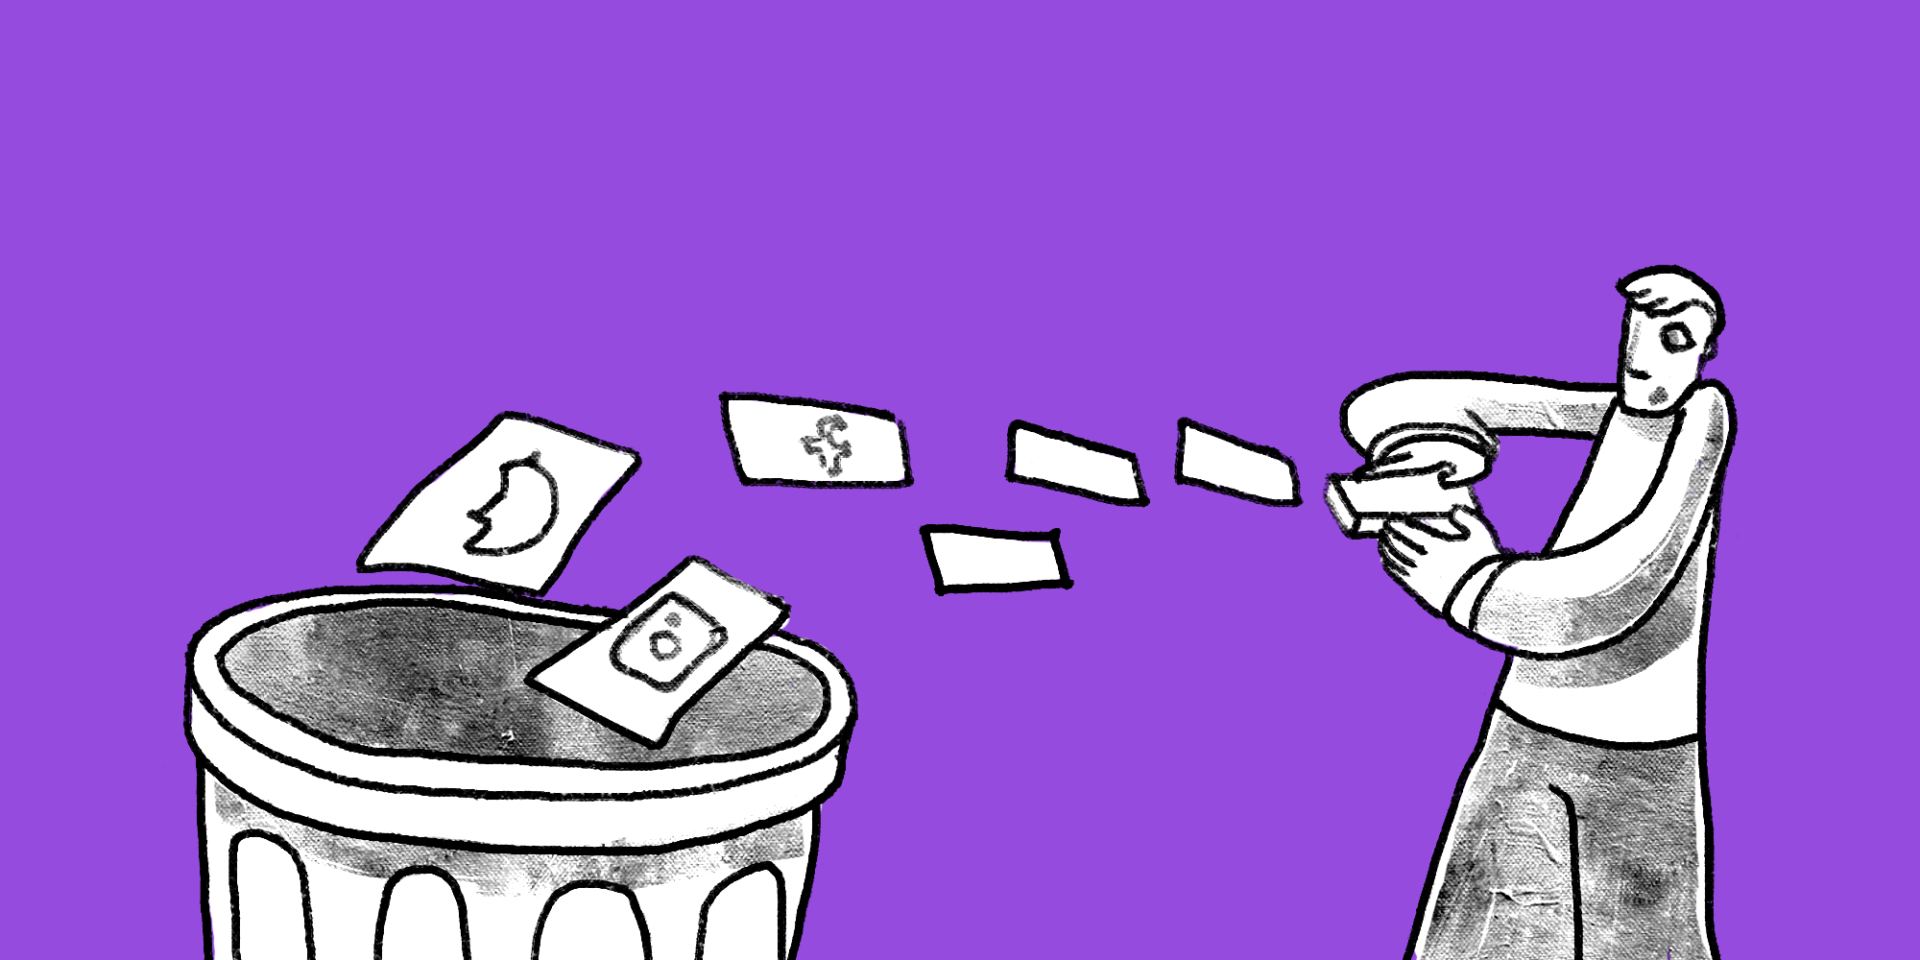 Man shuffles social media cards into trash can custom illustration; a social media mistake your business might be making